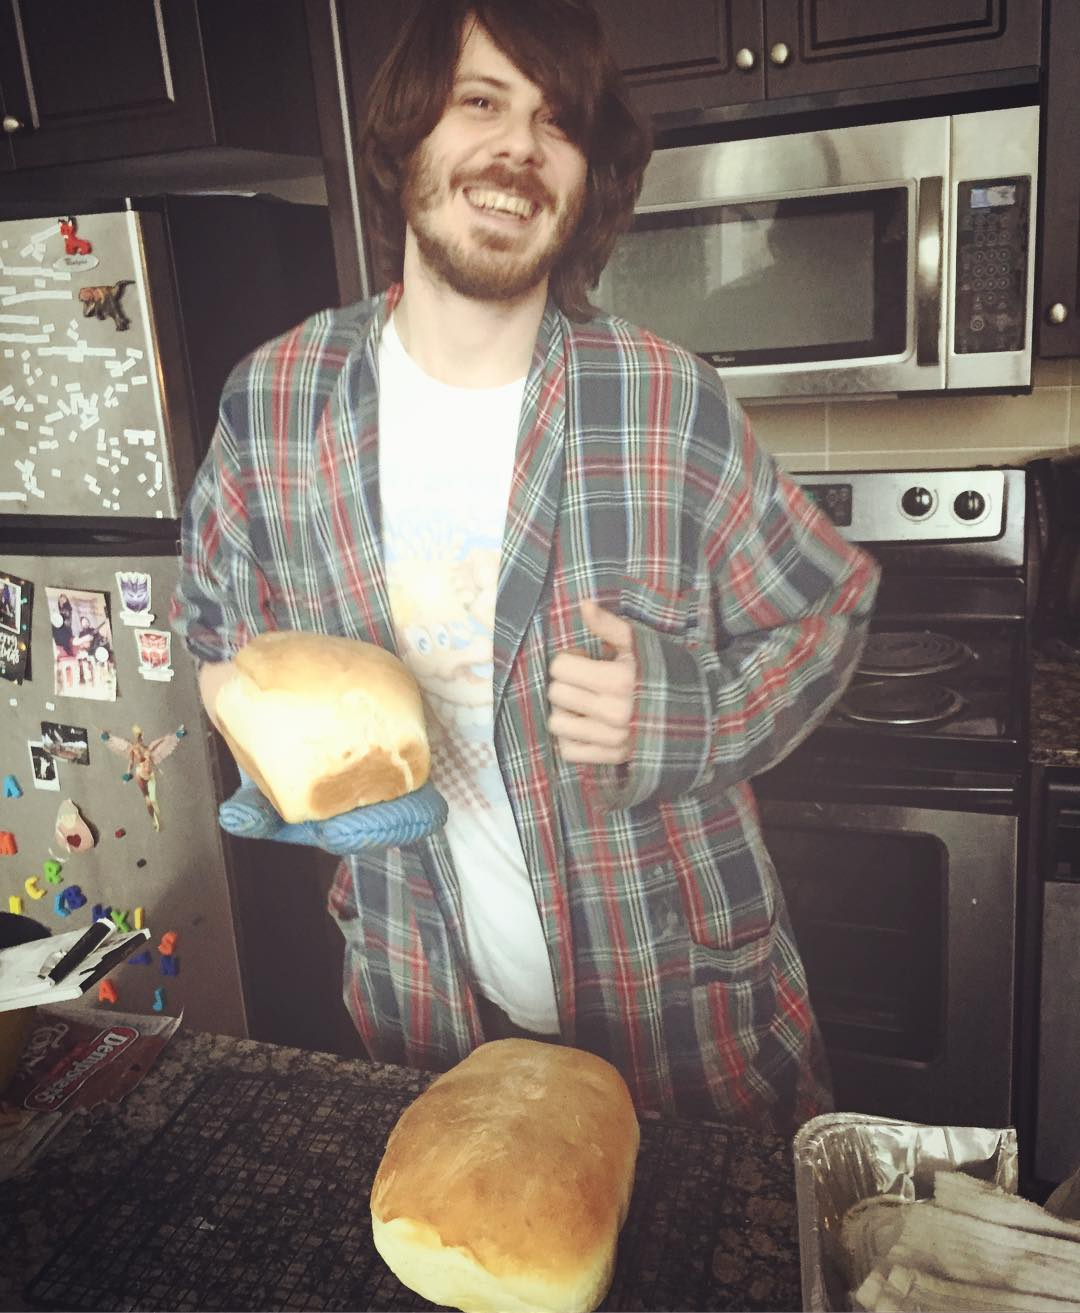 Hes cute and he made bread so yes I thinkhellip